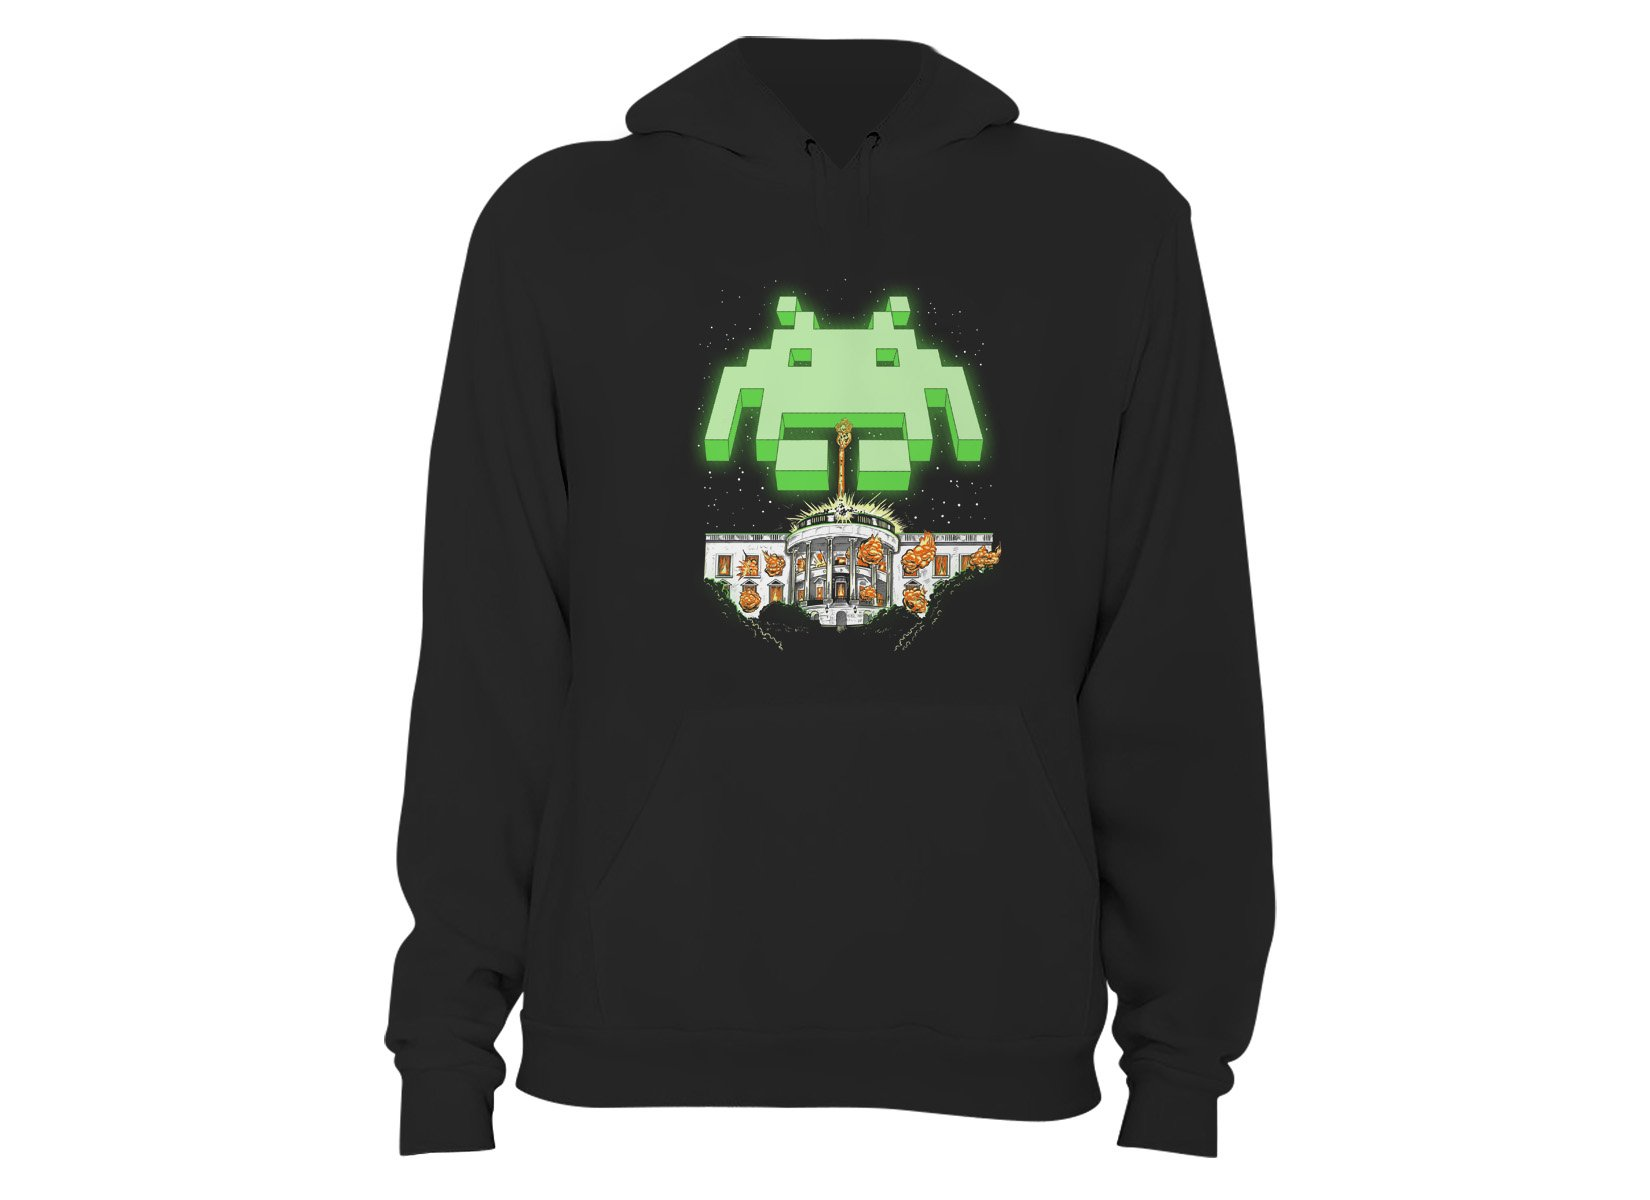 Invader Day on Hoodie